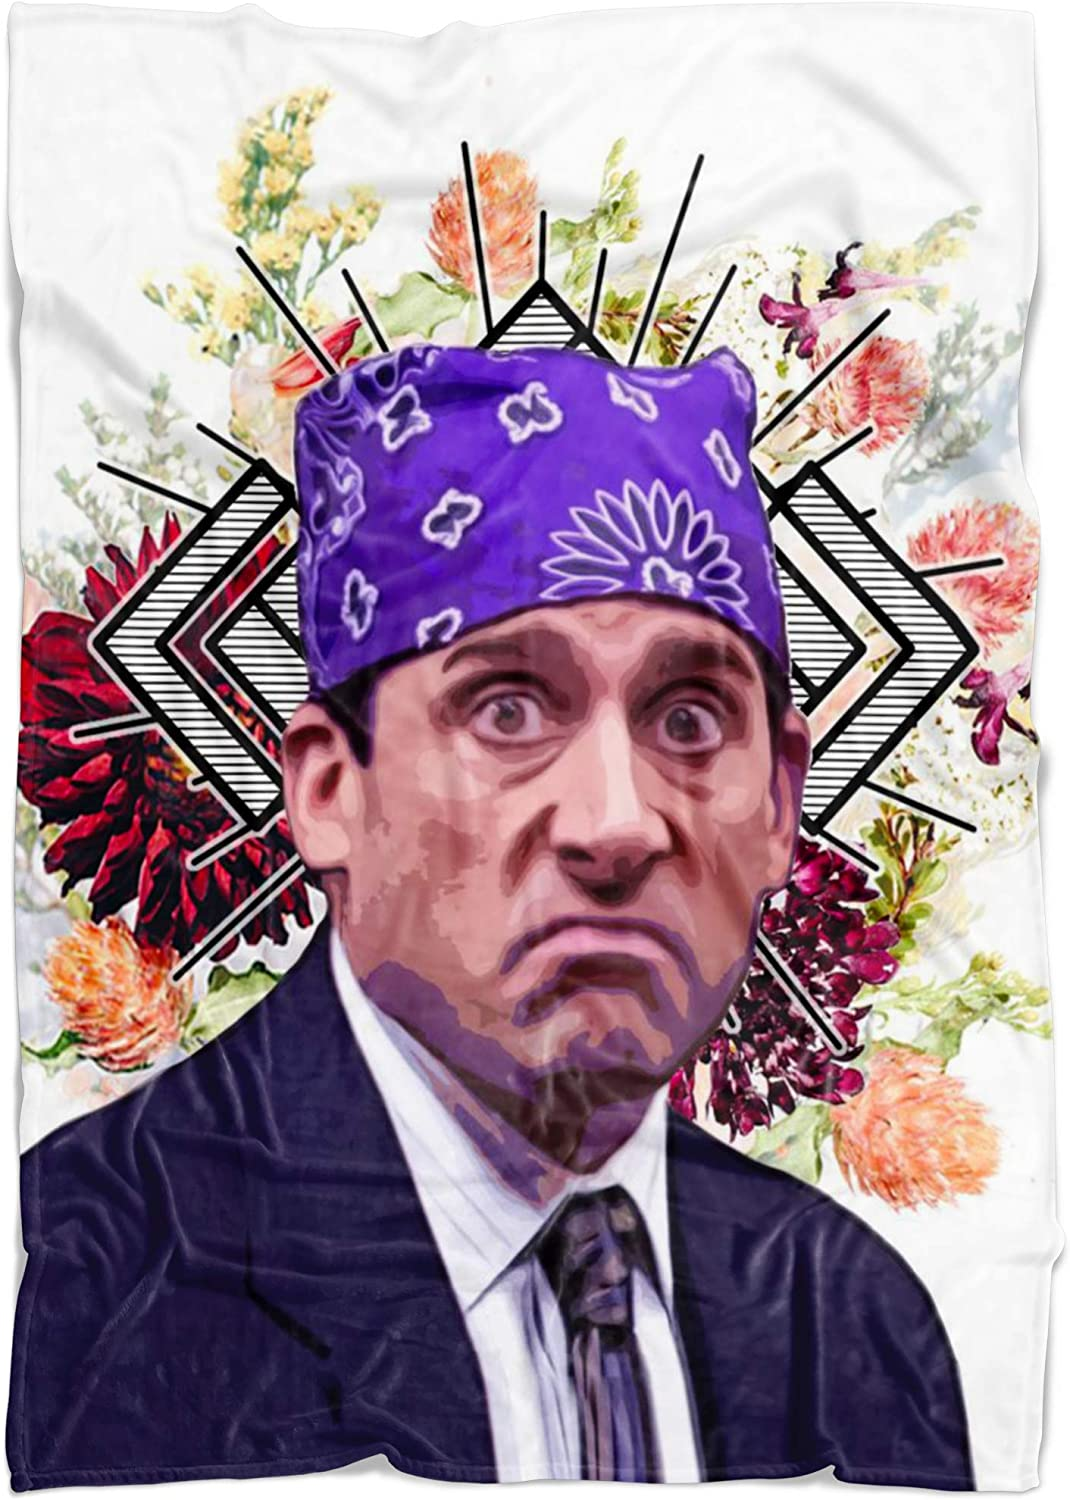 Prison Mike Fleece Throw Blanket - The Office TV Show Funny Gift - Michael Scott Home Decor Blanket, Funny Blankets for Adults, The Office Meme Gift